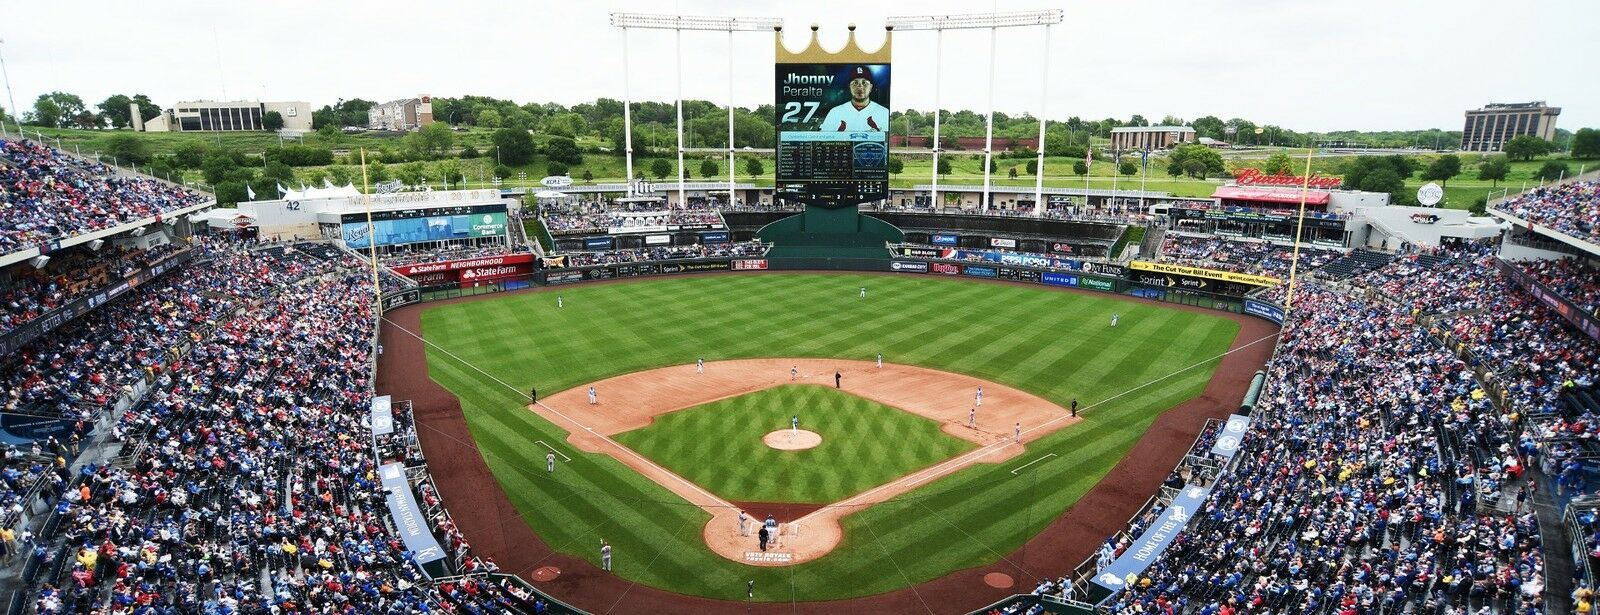 Milwaukee Brewers at Kansas City Royals